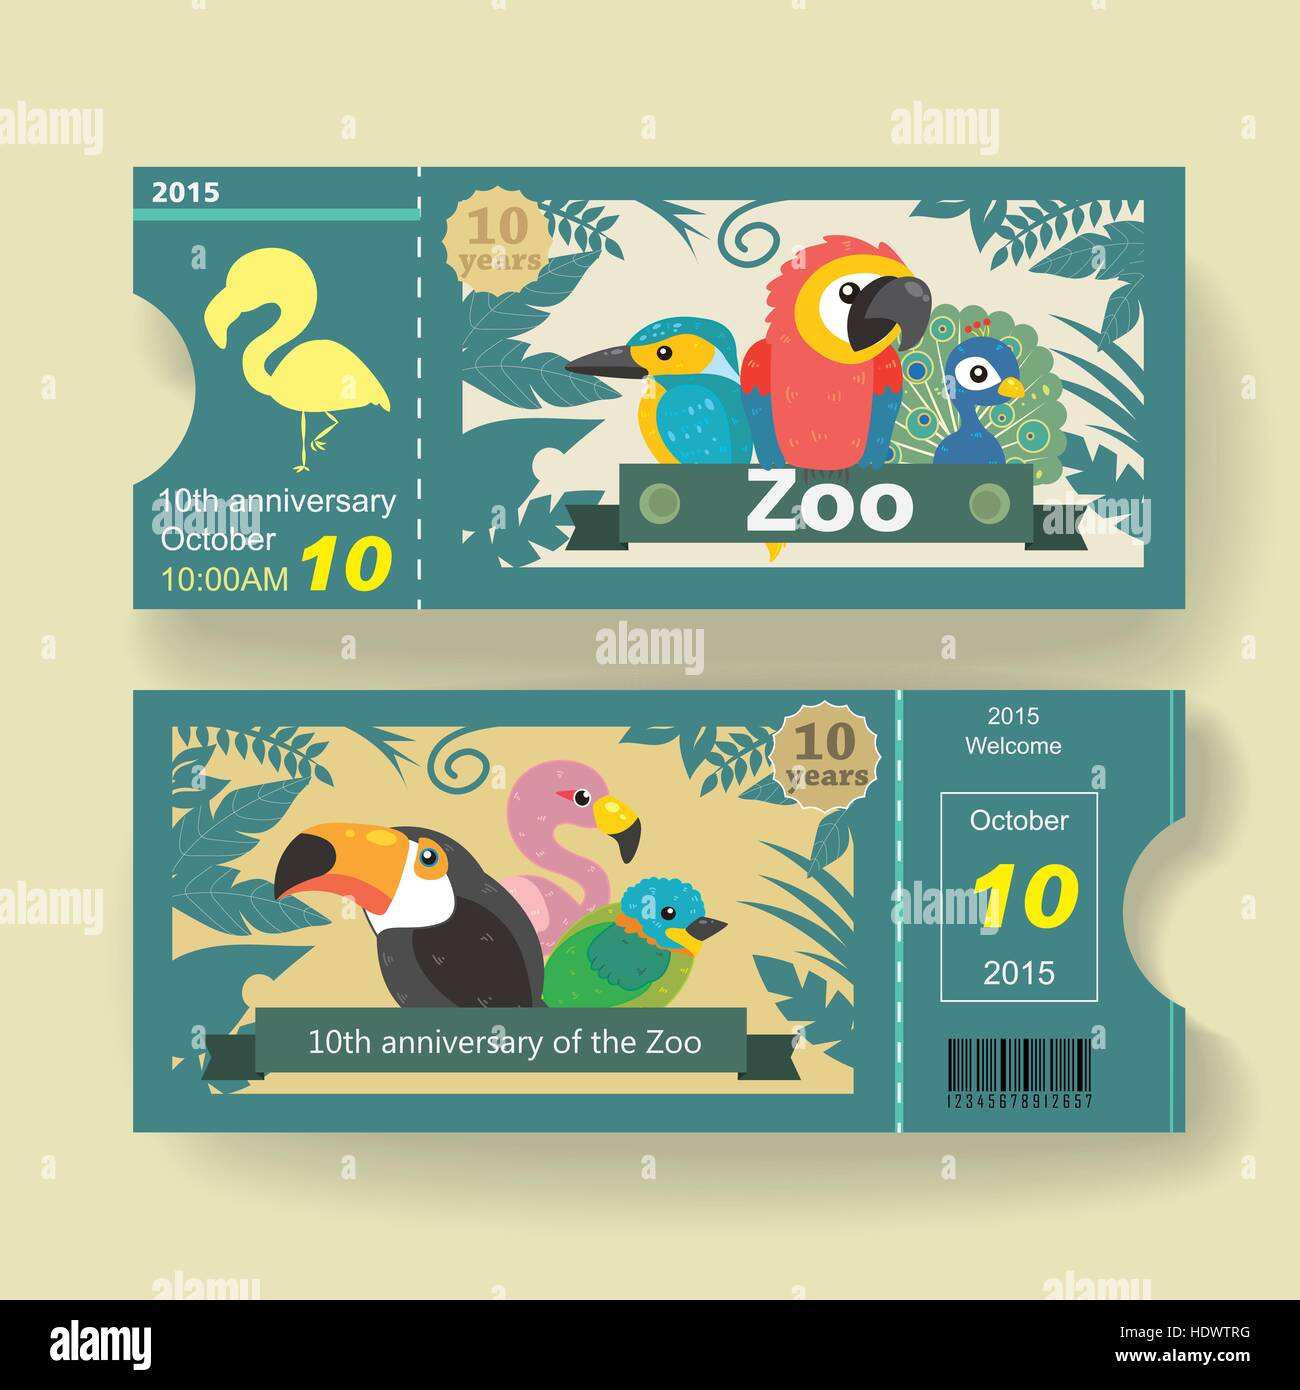 adorable 10th anniversary ticket design template for zoo - Stock Vector